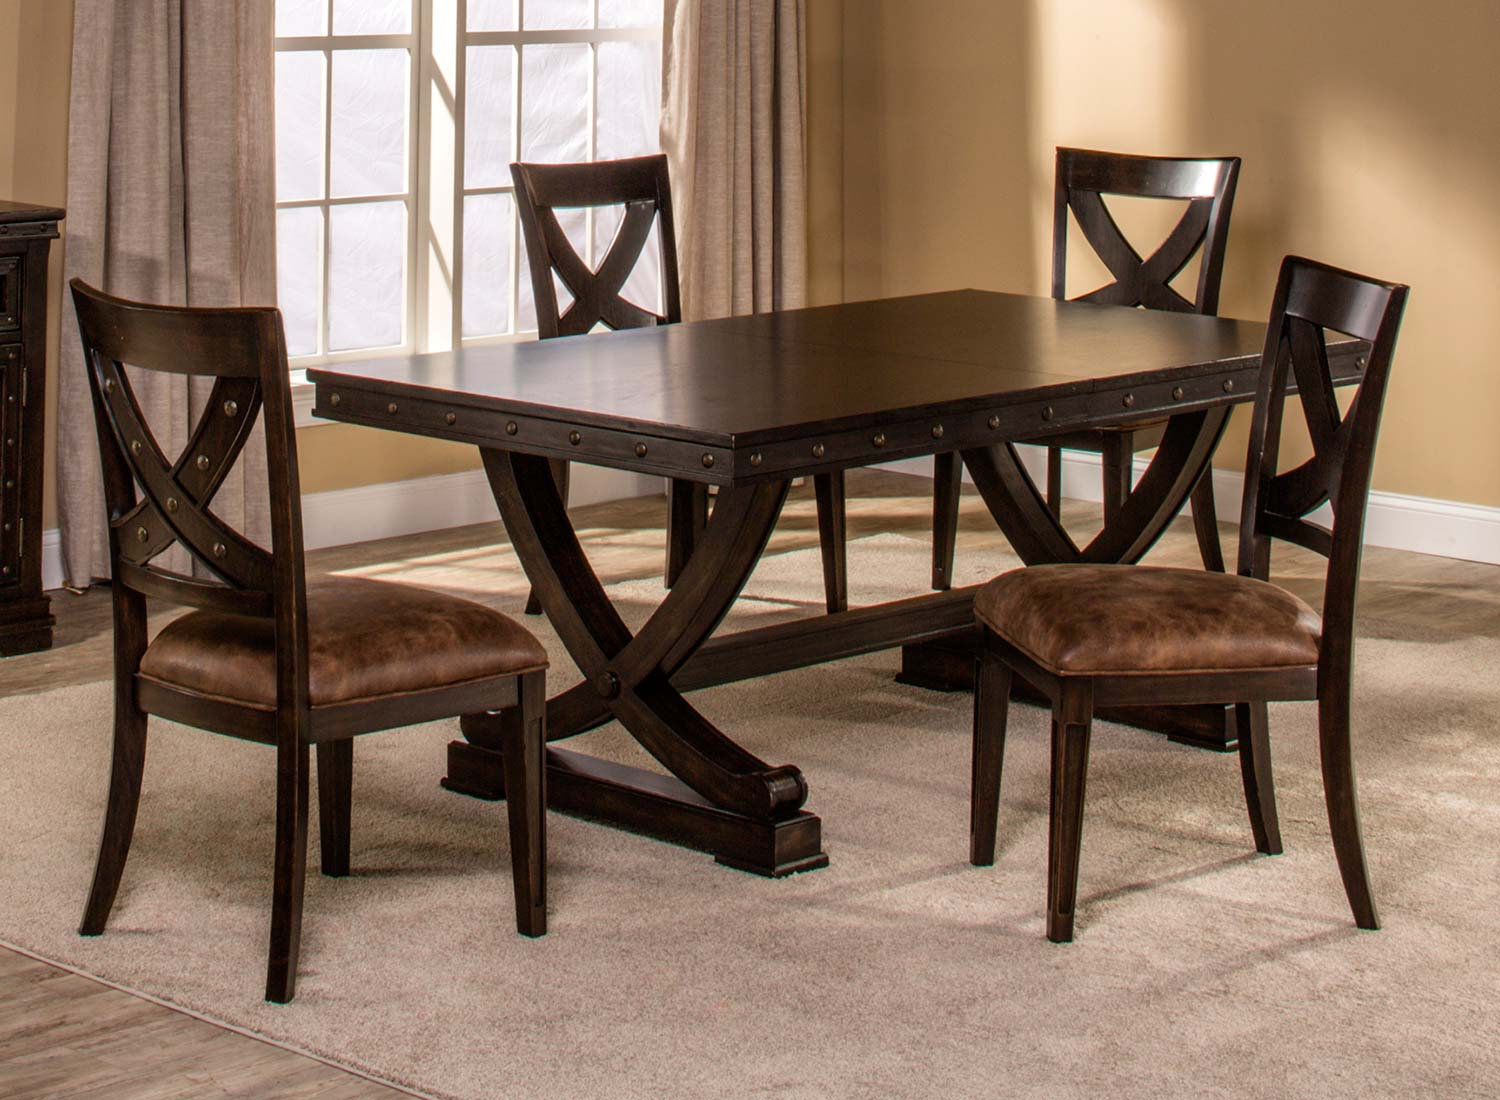 Hillsdale Santa Fe 5-Piece Trestle Dining Set - Distressed Espresso